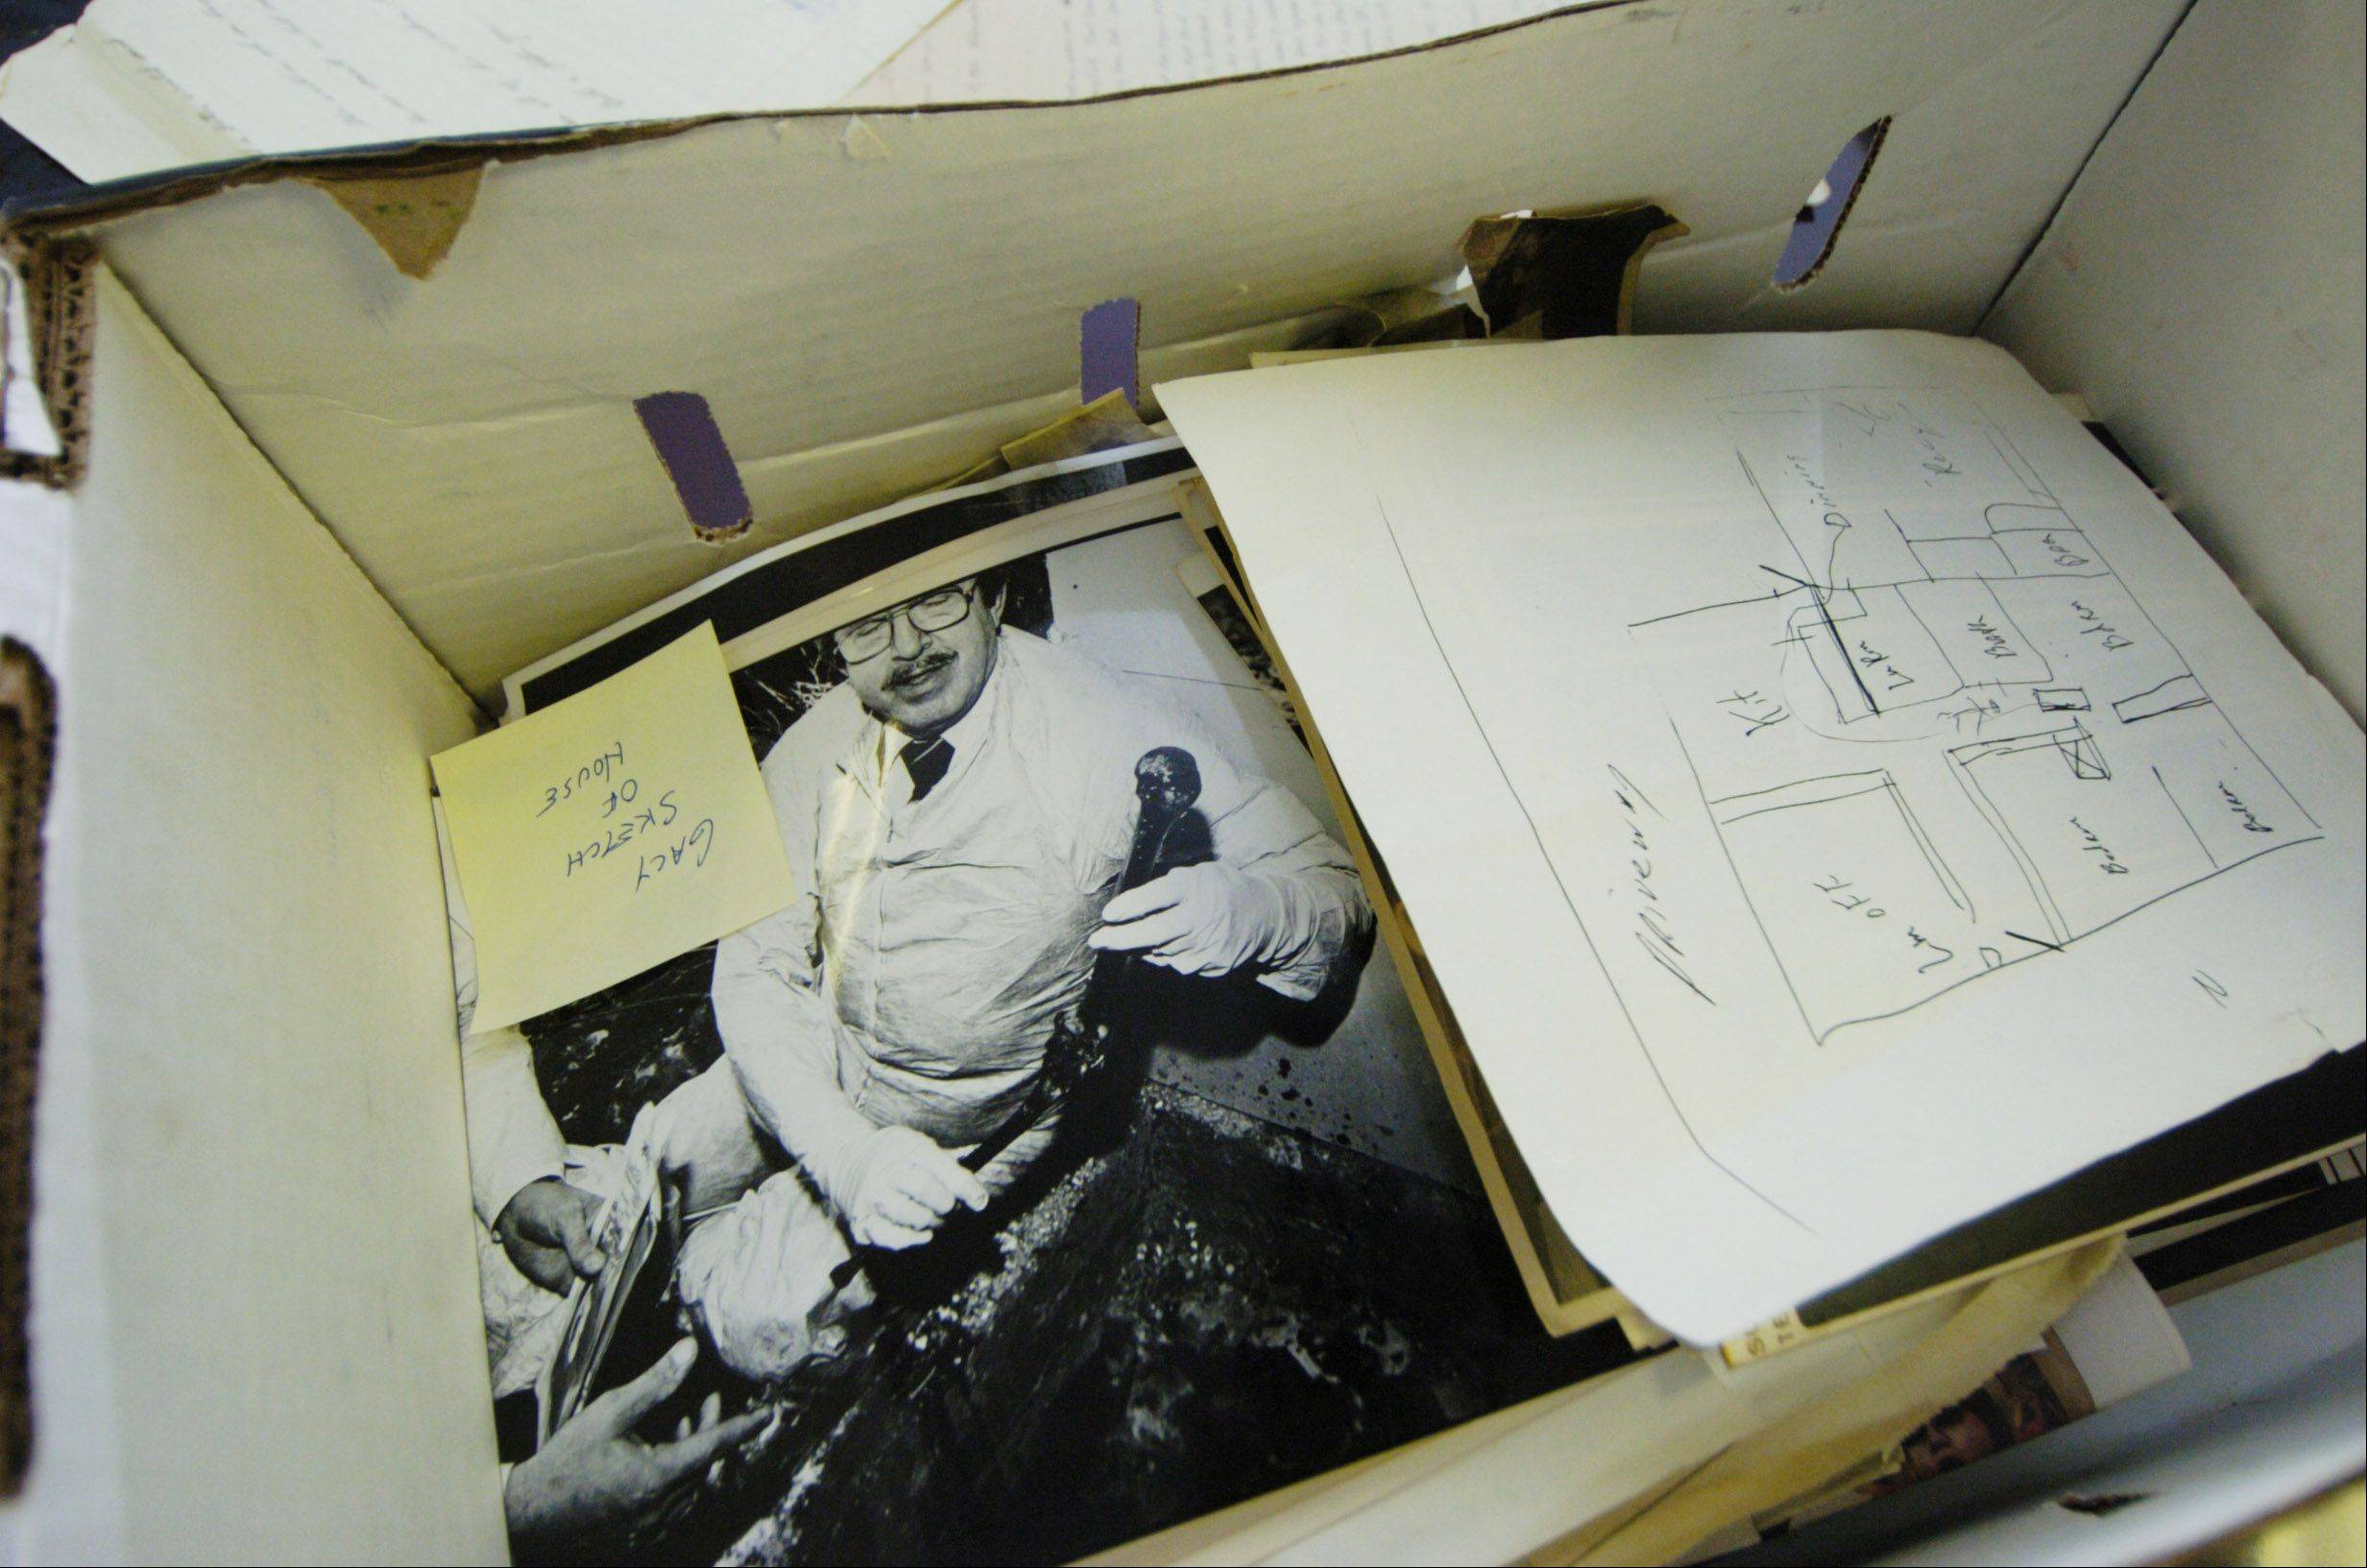 Legal box containing items related to the John Wayne Gacy trial.